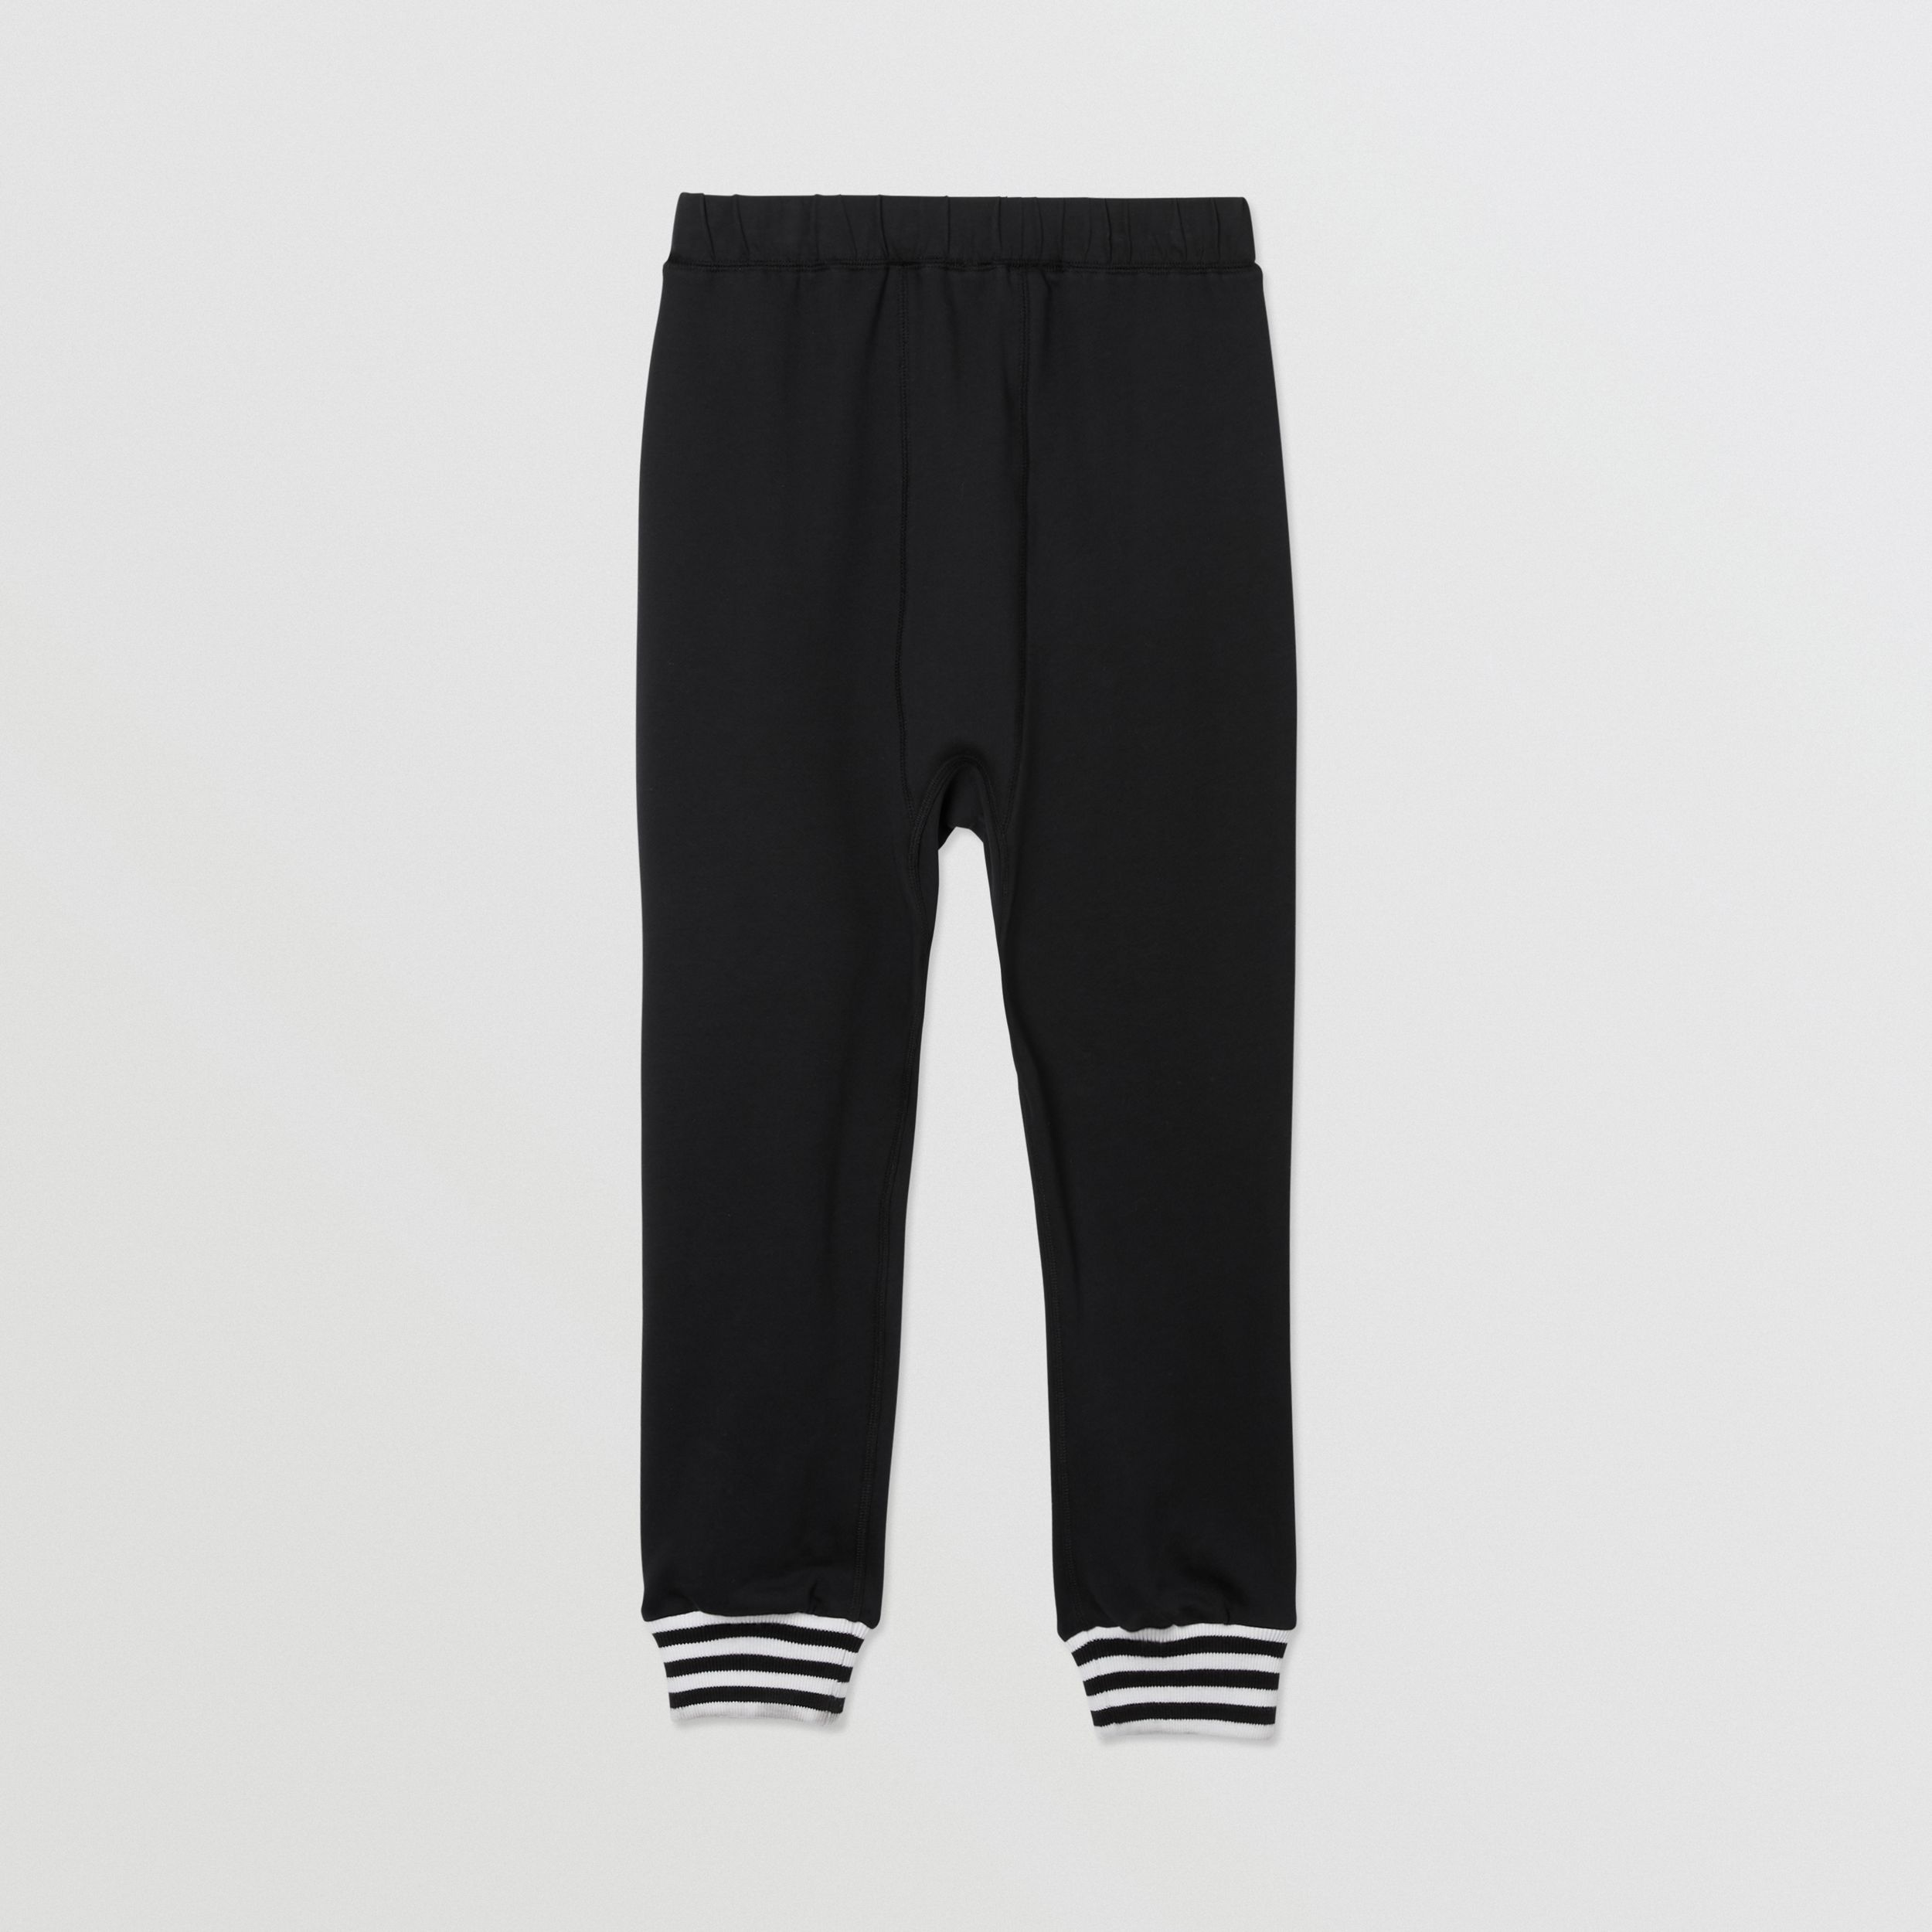 Kingdom and Star Print Cotton Trackpants in Black | Burberry - 4